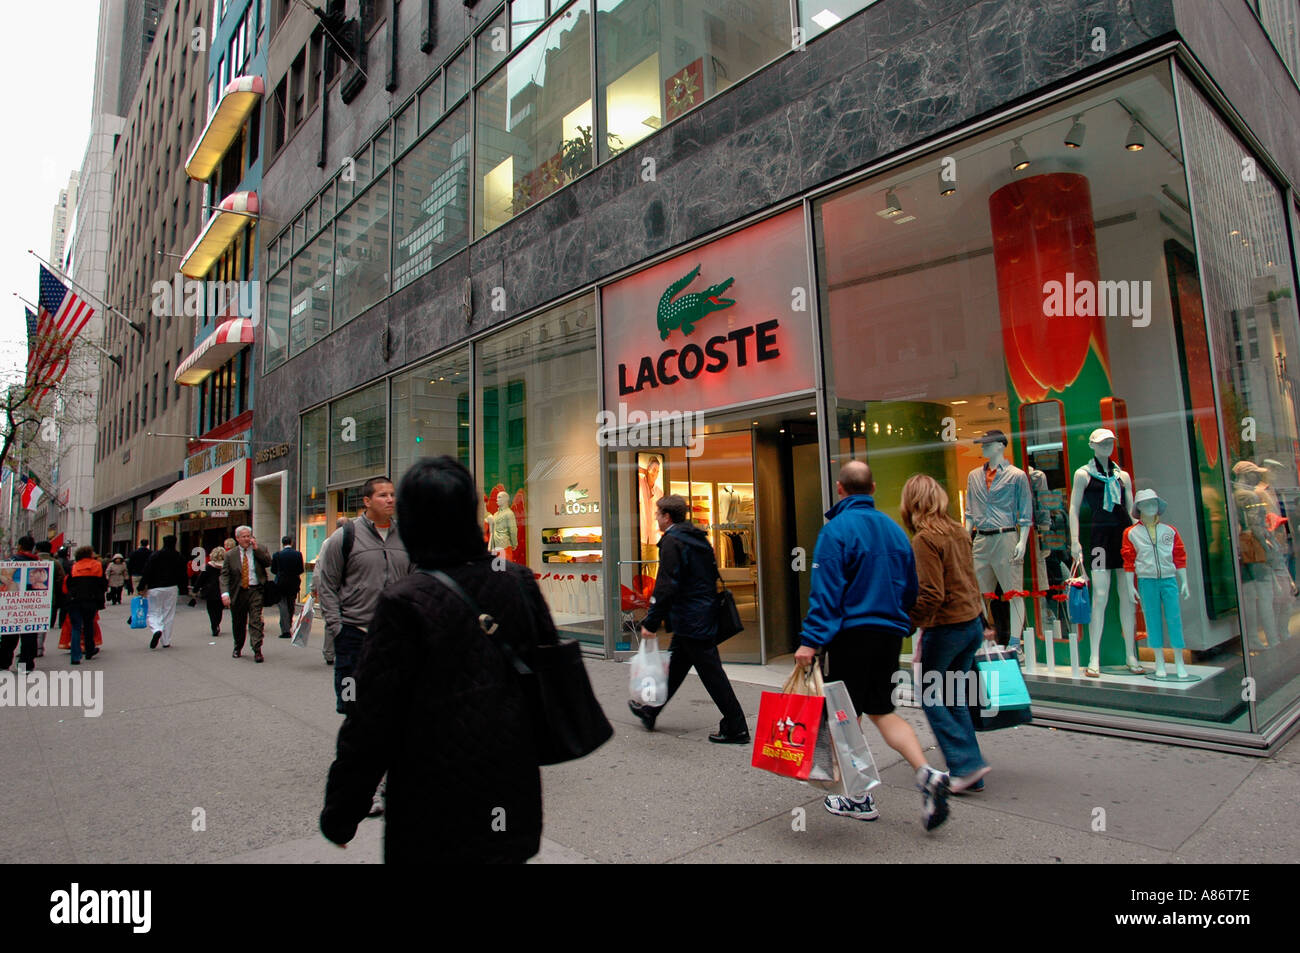 85f99cae306 Lacoste store on Fifth Avenue in New York City Stock Photo  3919997 ...